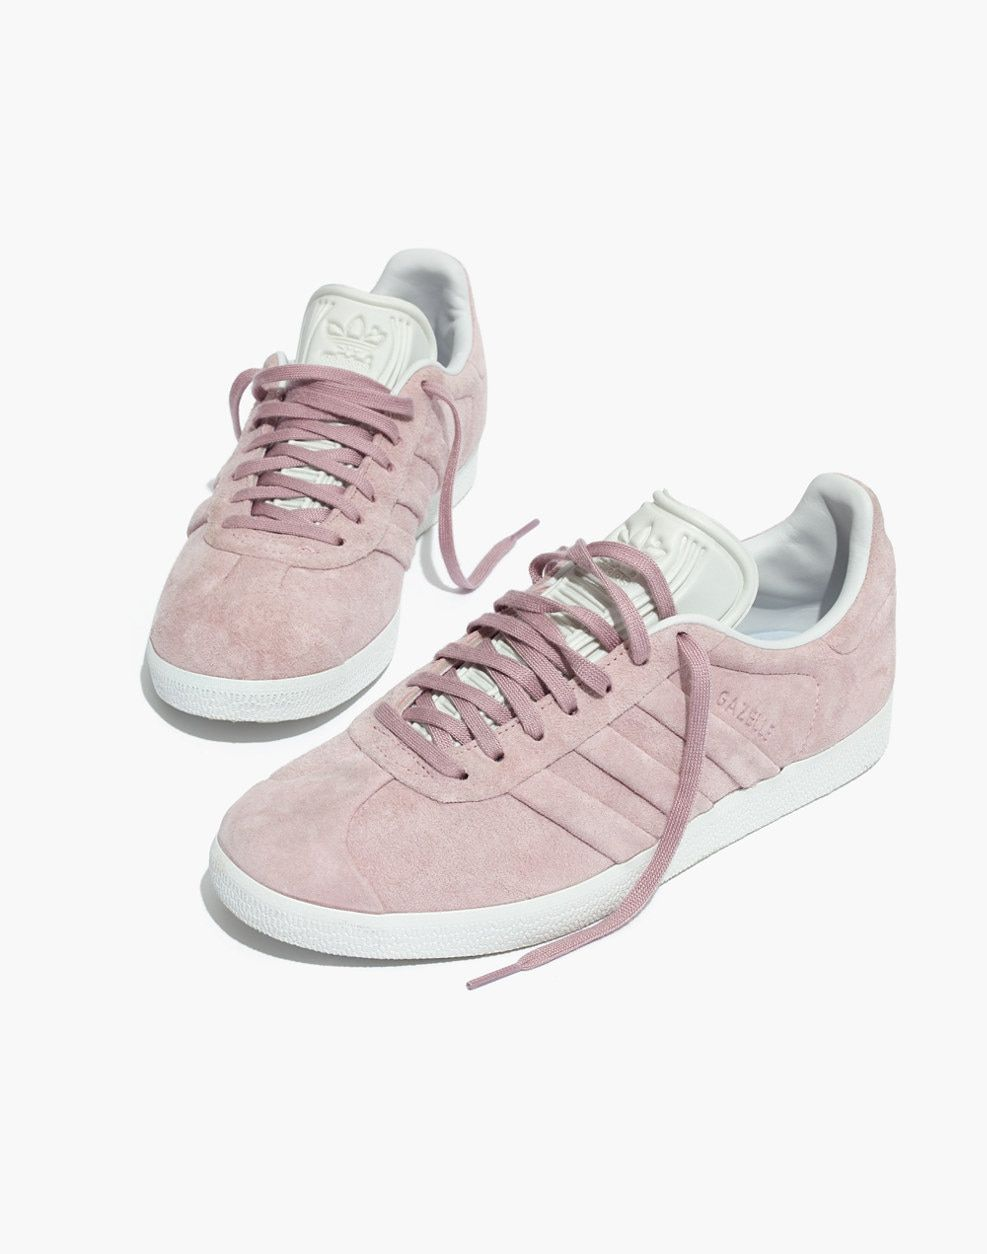 Adidas® Gazelle® Lace Up Sneakers in Suede   *Shoes